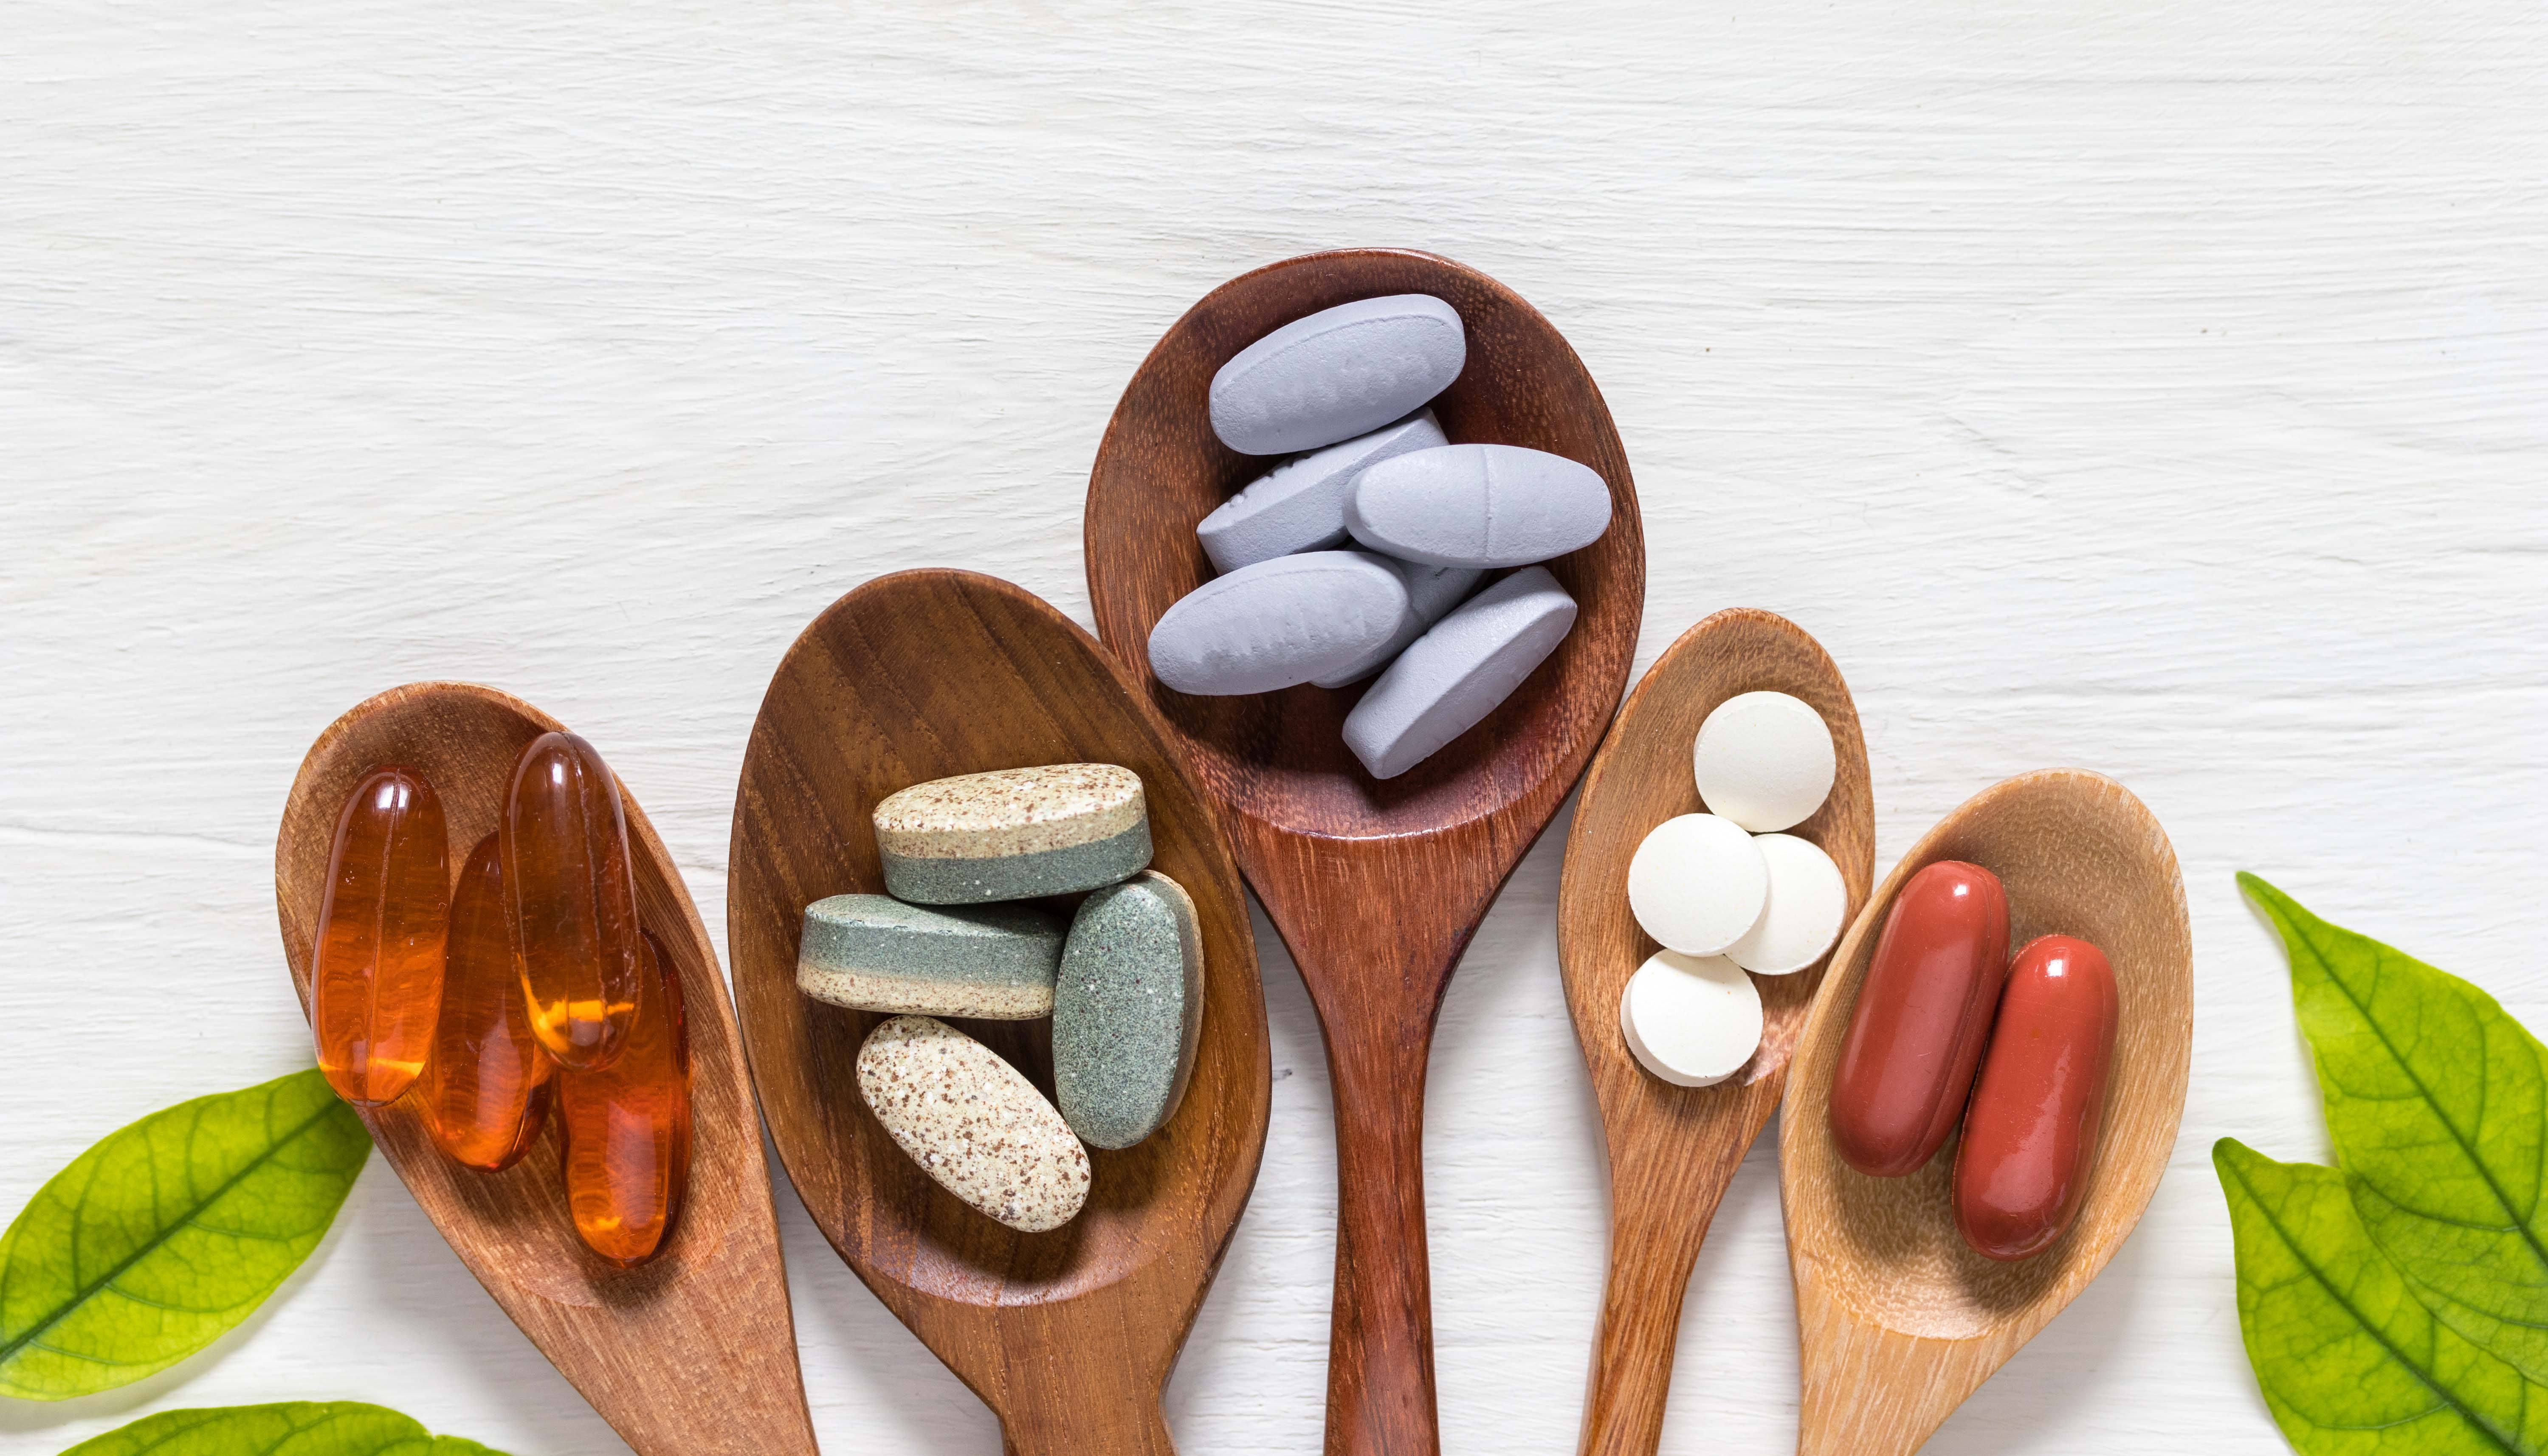 Wooden spoons with medications